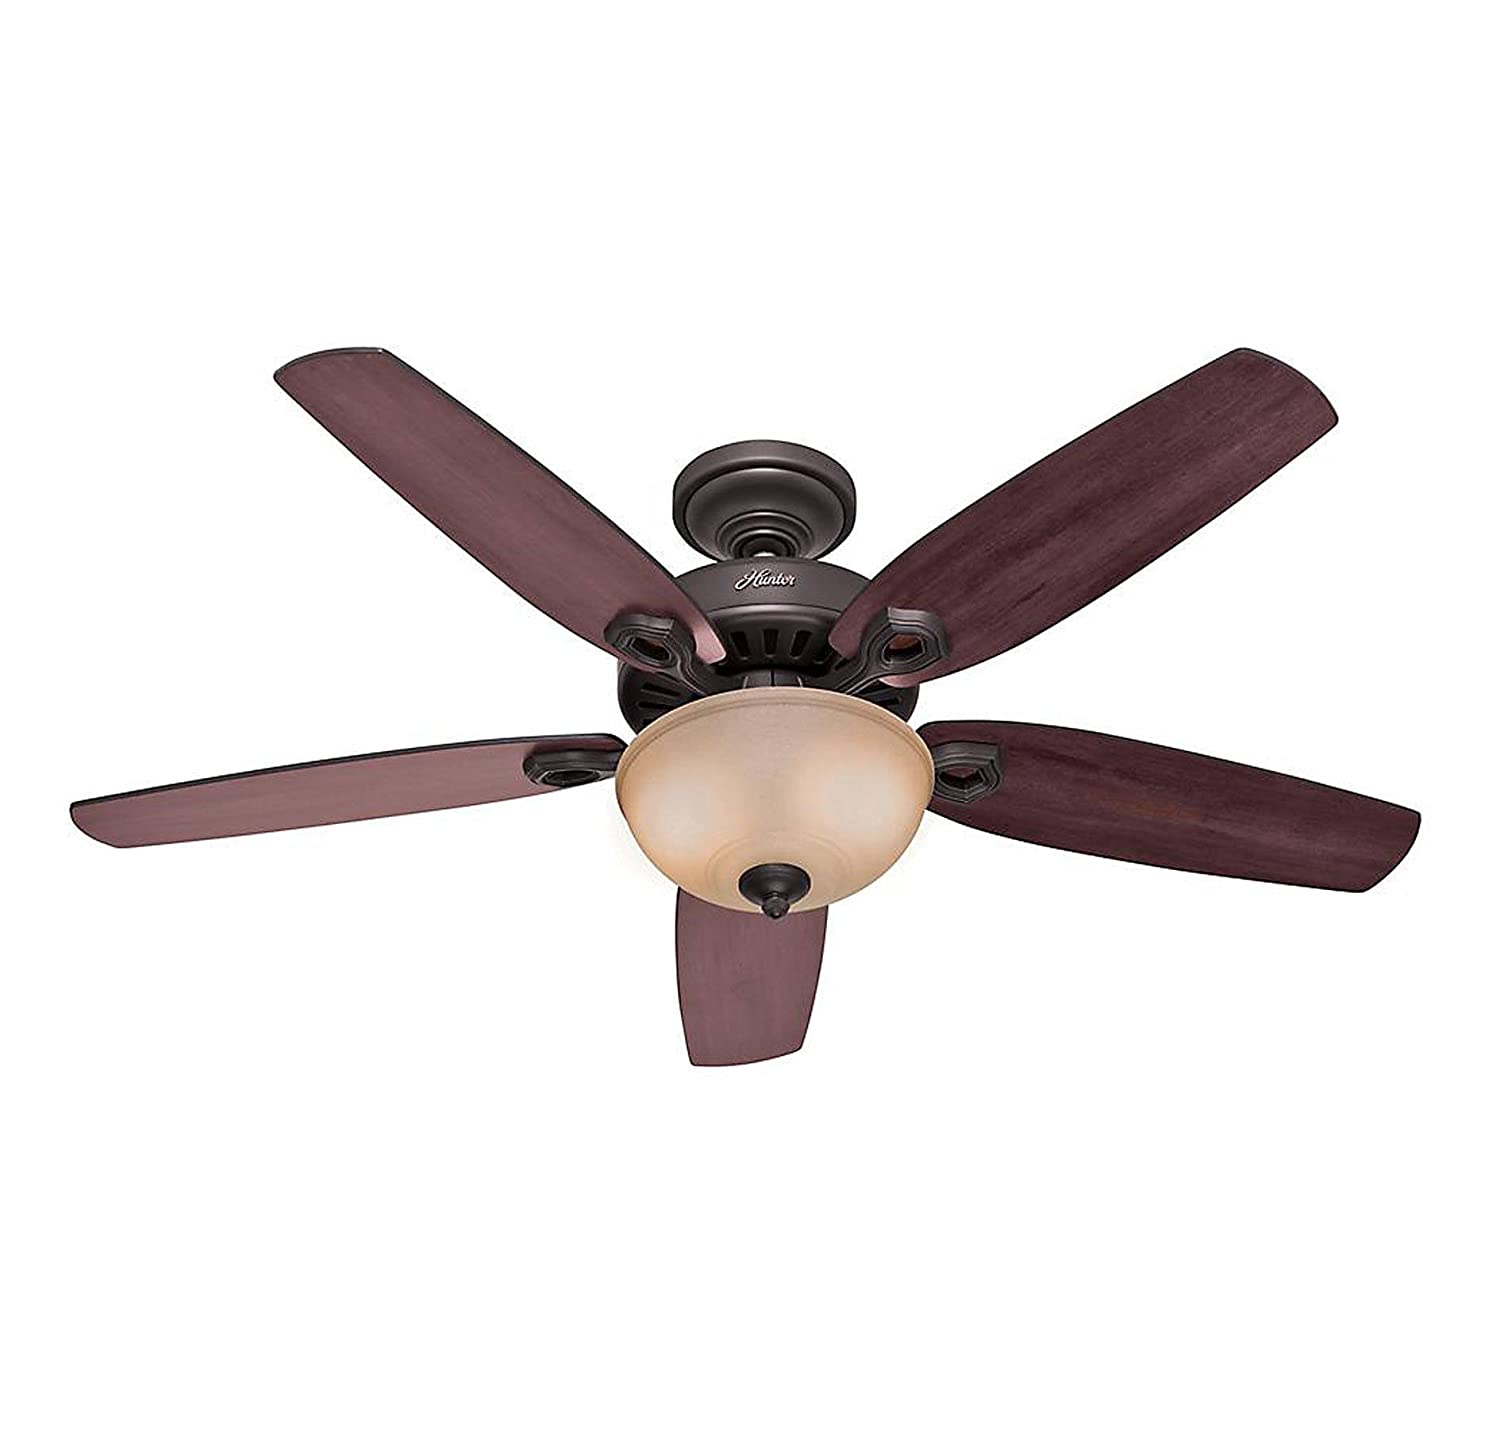 Ceiling fans amazon lighting ceiling fans ceiling fans hunter aloadofball